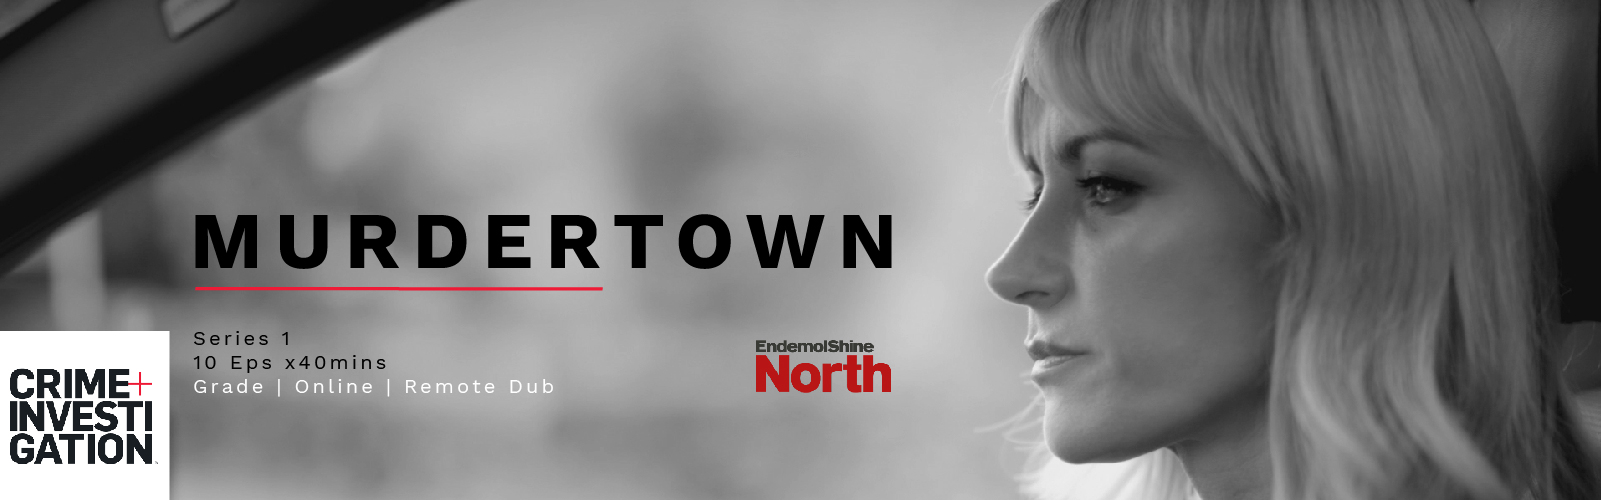 murdertown crime+investigation logo katherine kelly post production manchester